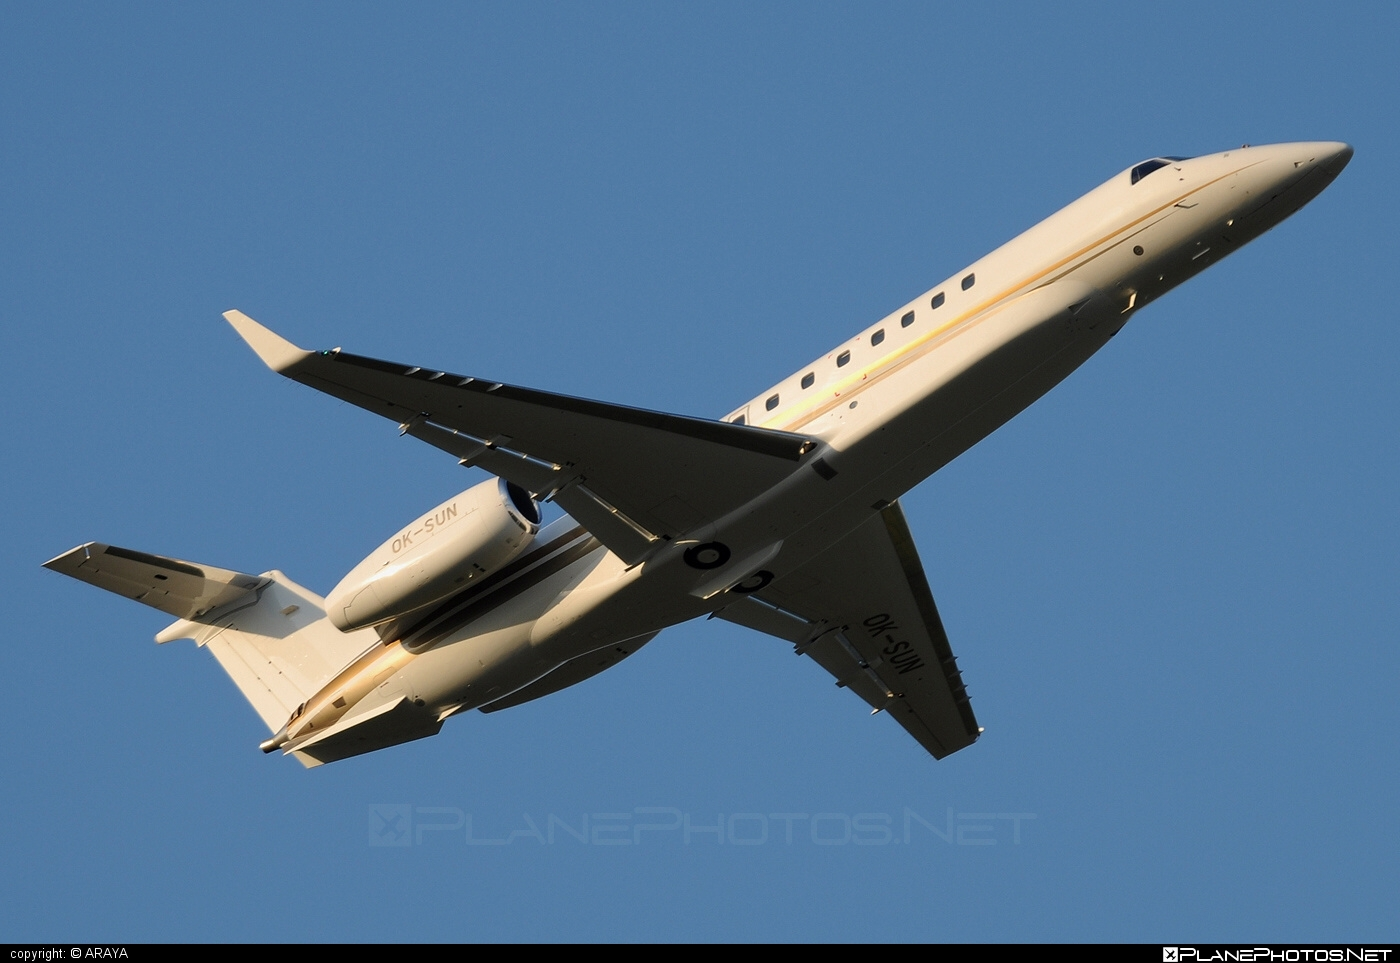 Embraer ERJ-135BJ Legacy - OK-SUN operated by ABS Jets #embraer #embraer135 #embraerlegacy #erj135 #erj135bj